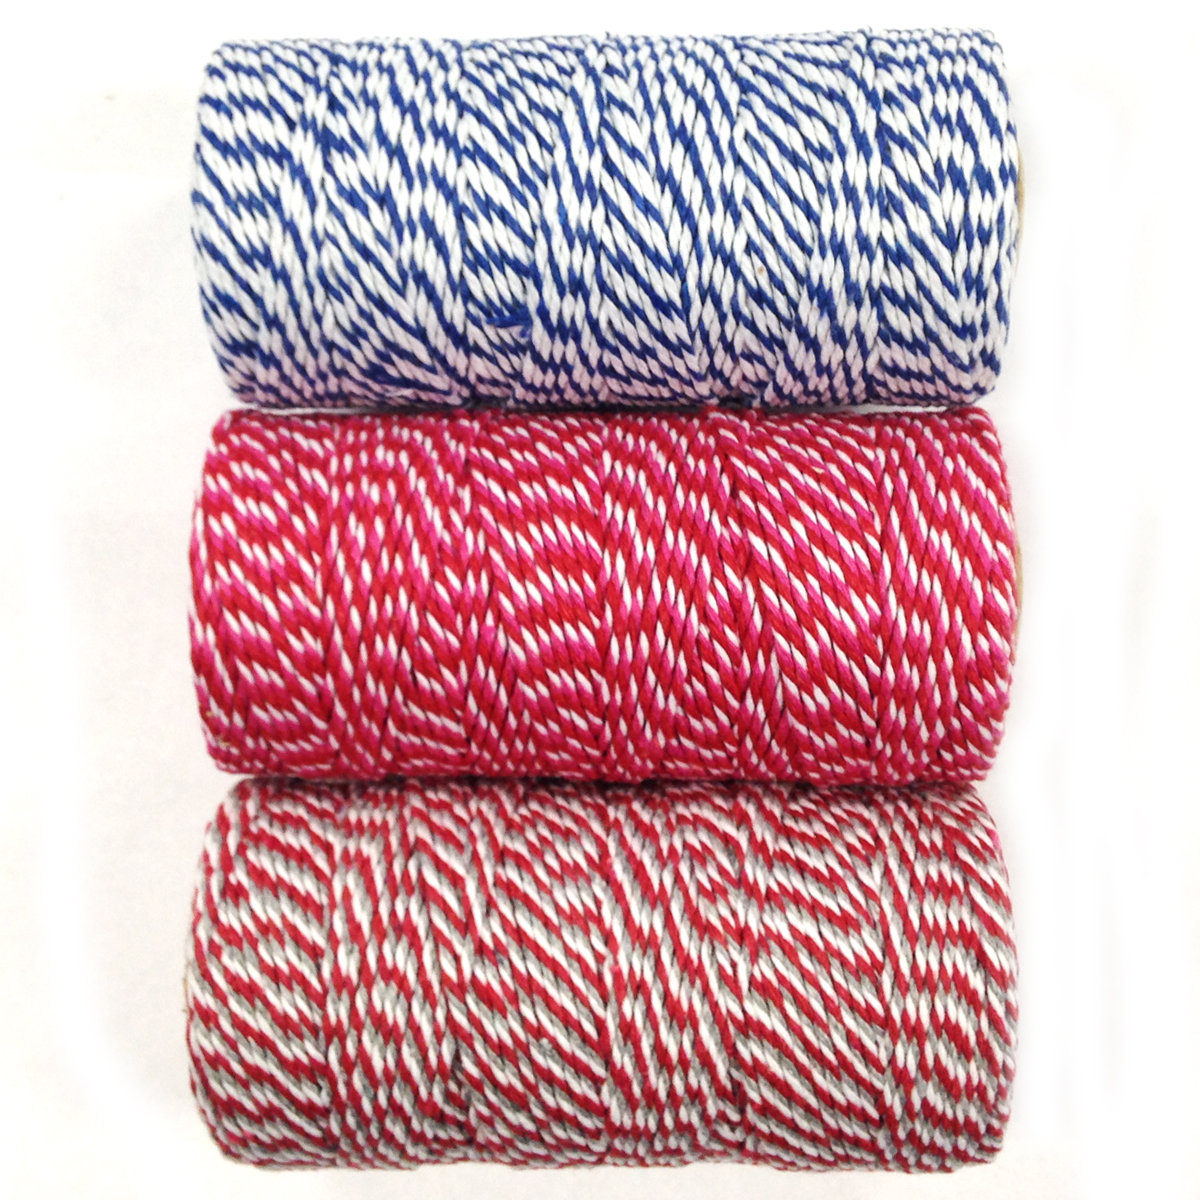 Wrapables® Cotton Baker's Twine 12ply 330 Yards (Set of 3 Spools x 110 Yards) for Gift Wrapping, Party Decor, and Arts and Crafts  ( Navy, Red & Hot Pink, Red & Grey)